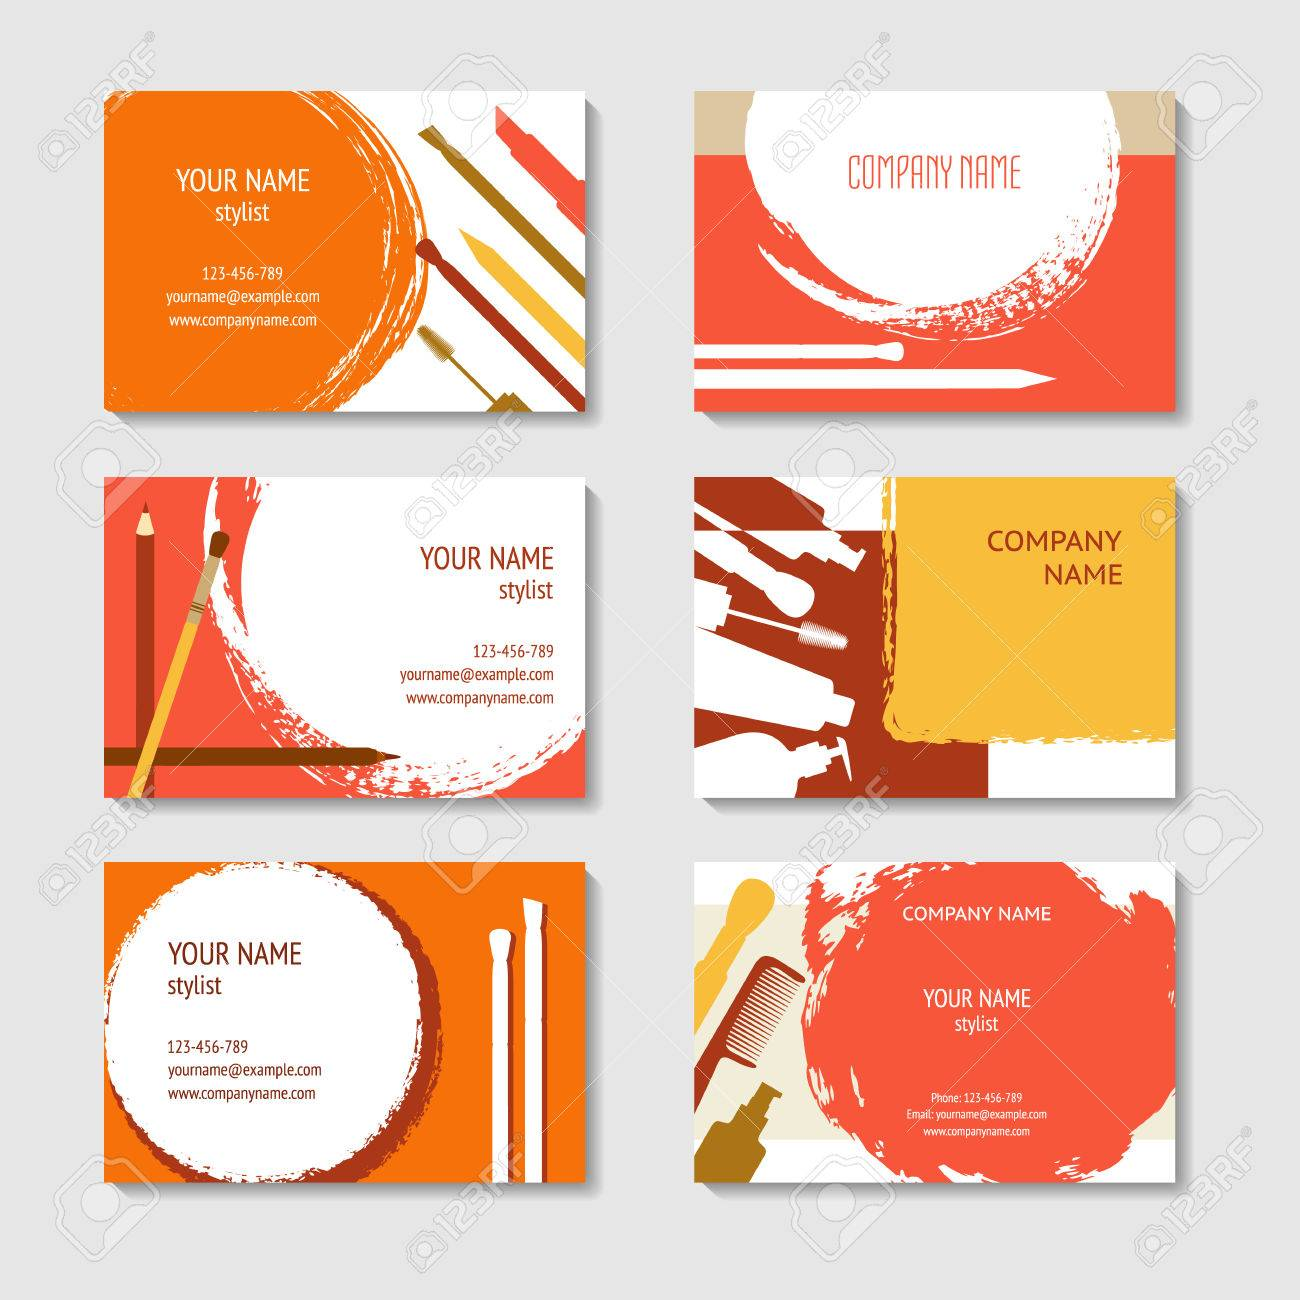 Cosmetic and makeup business cards set template for poster cosmetic and makeup business cards set template for poster colorful creative banner in modern colourmoves